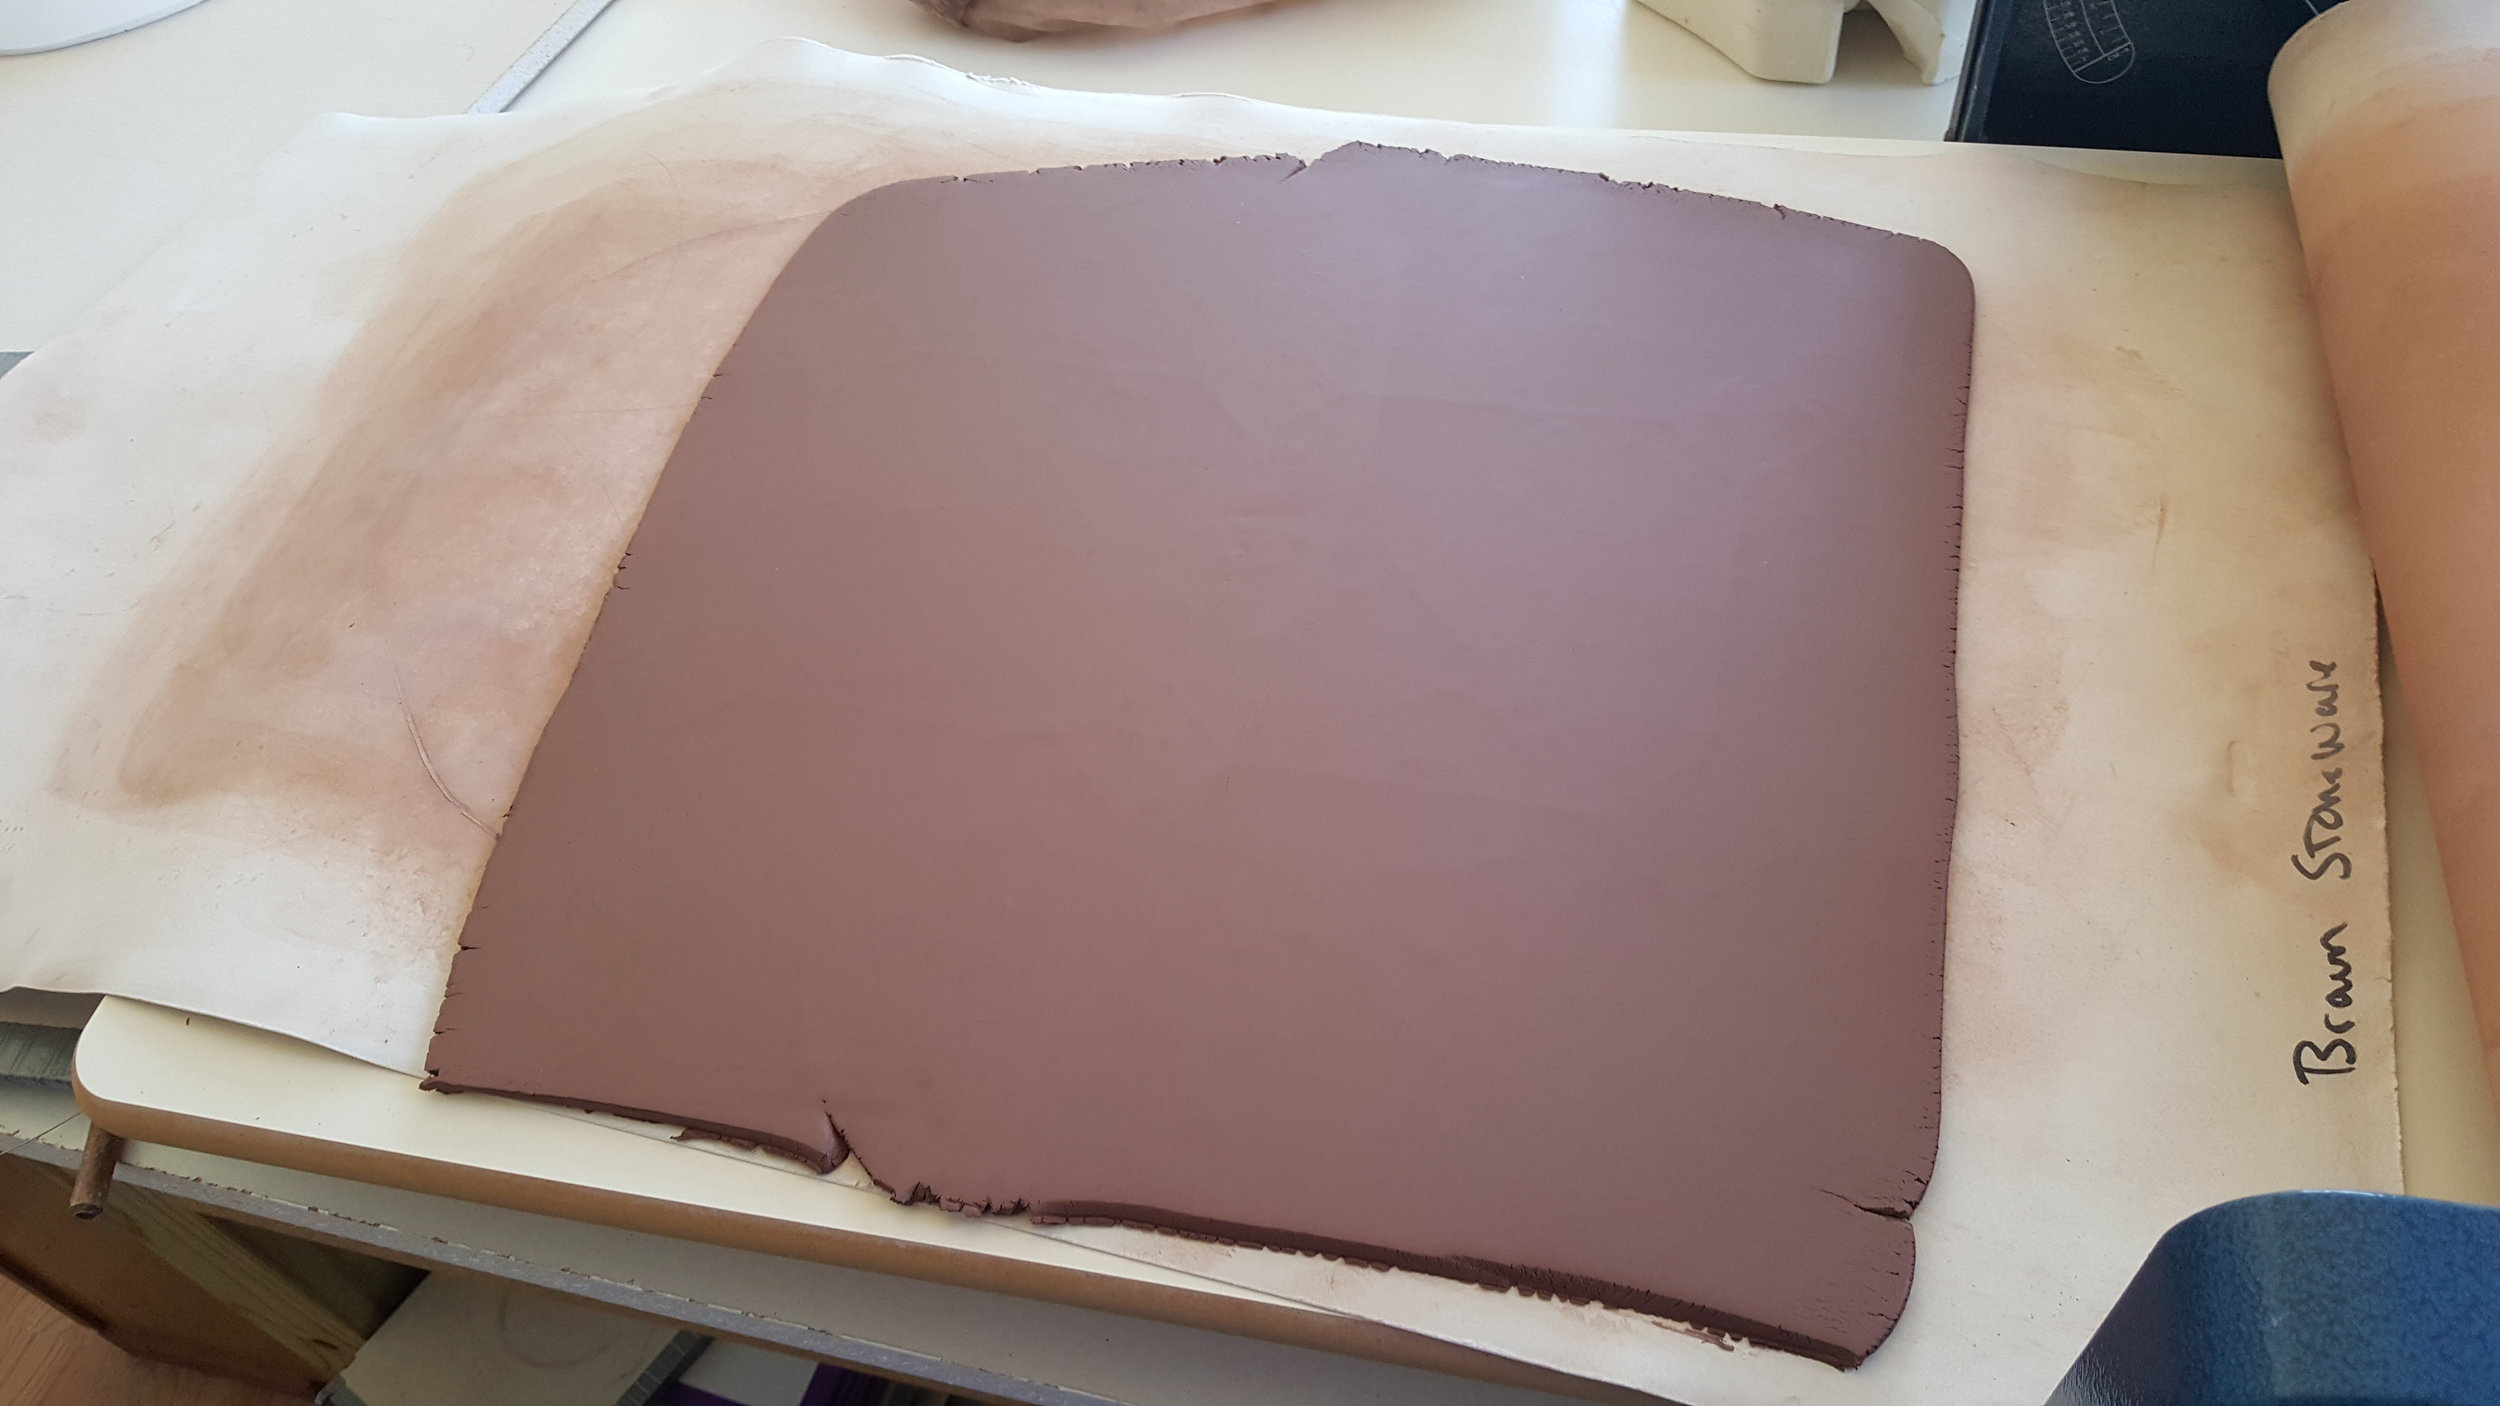 Red clay rolled out and ready to be formed.